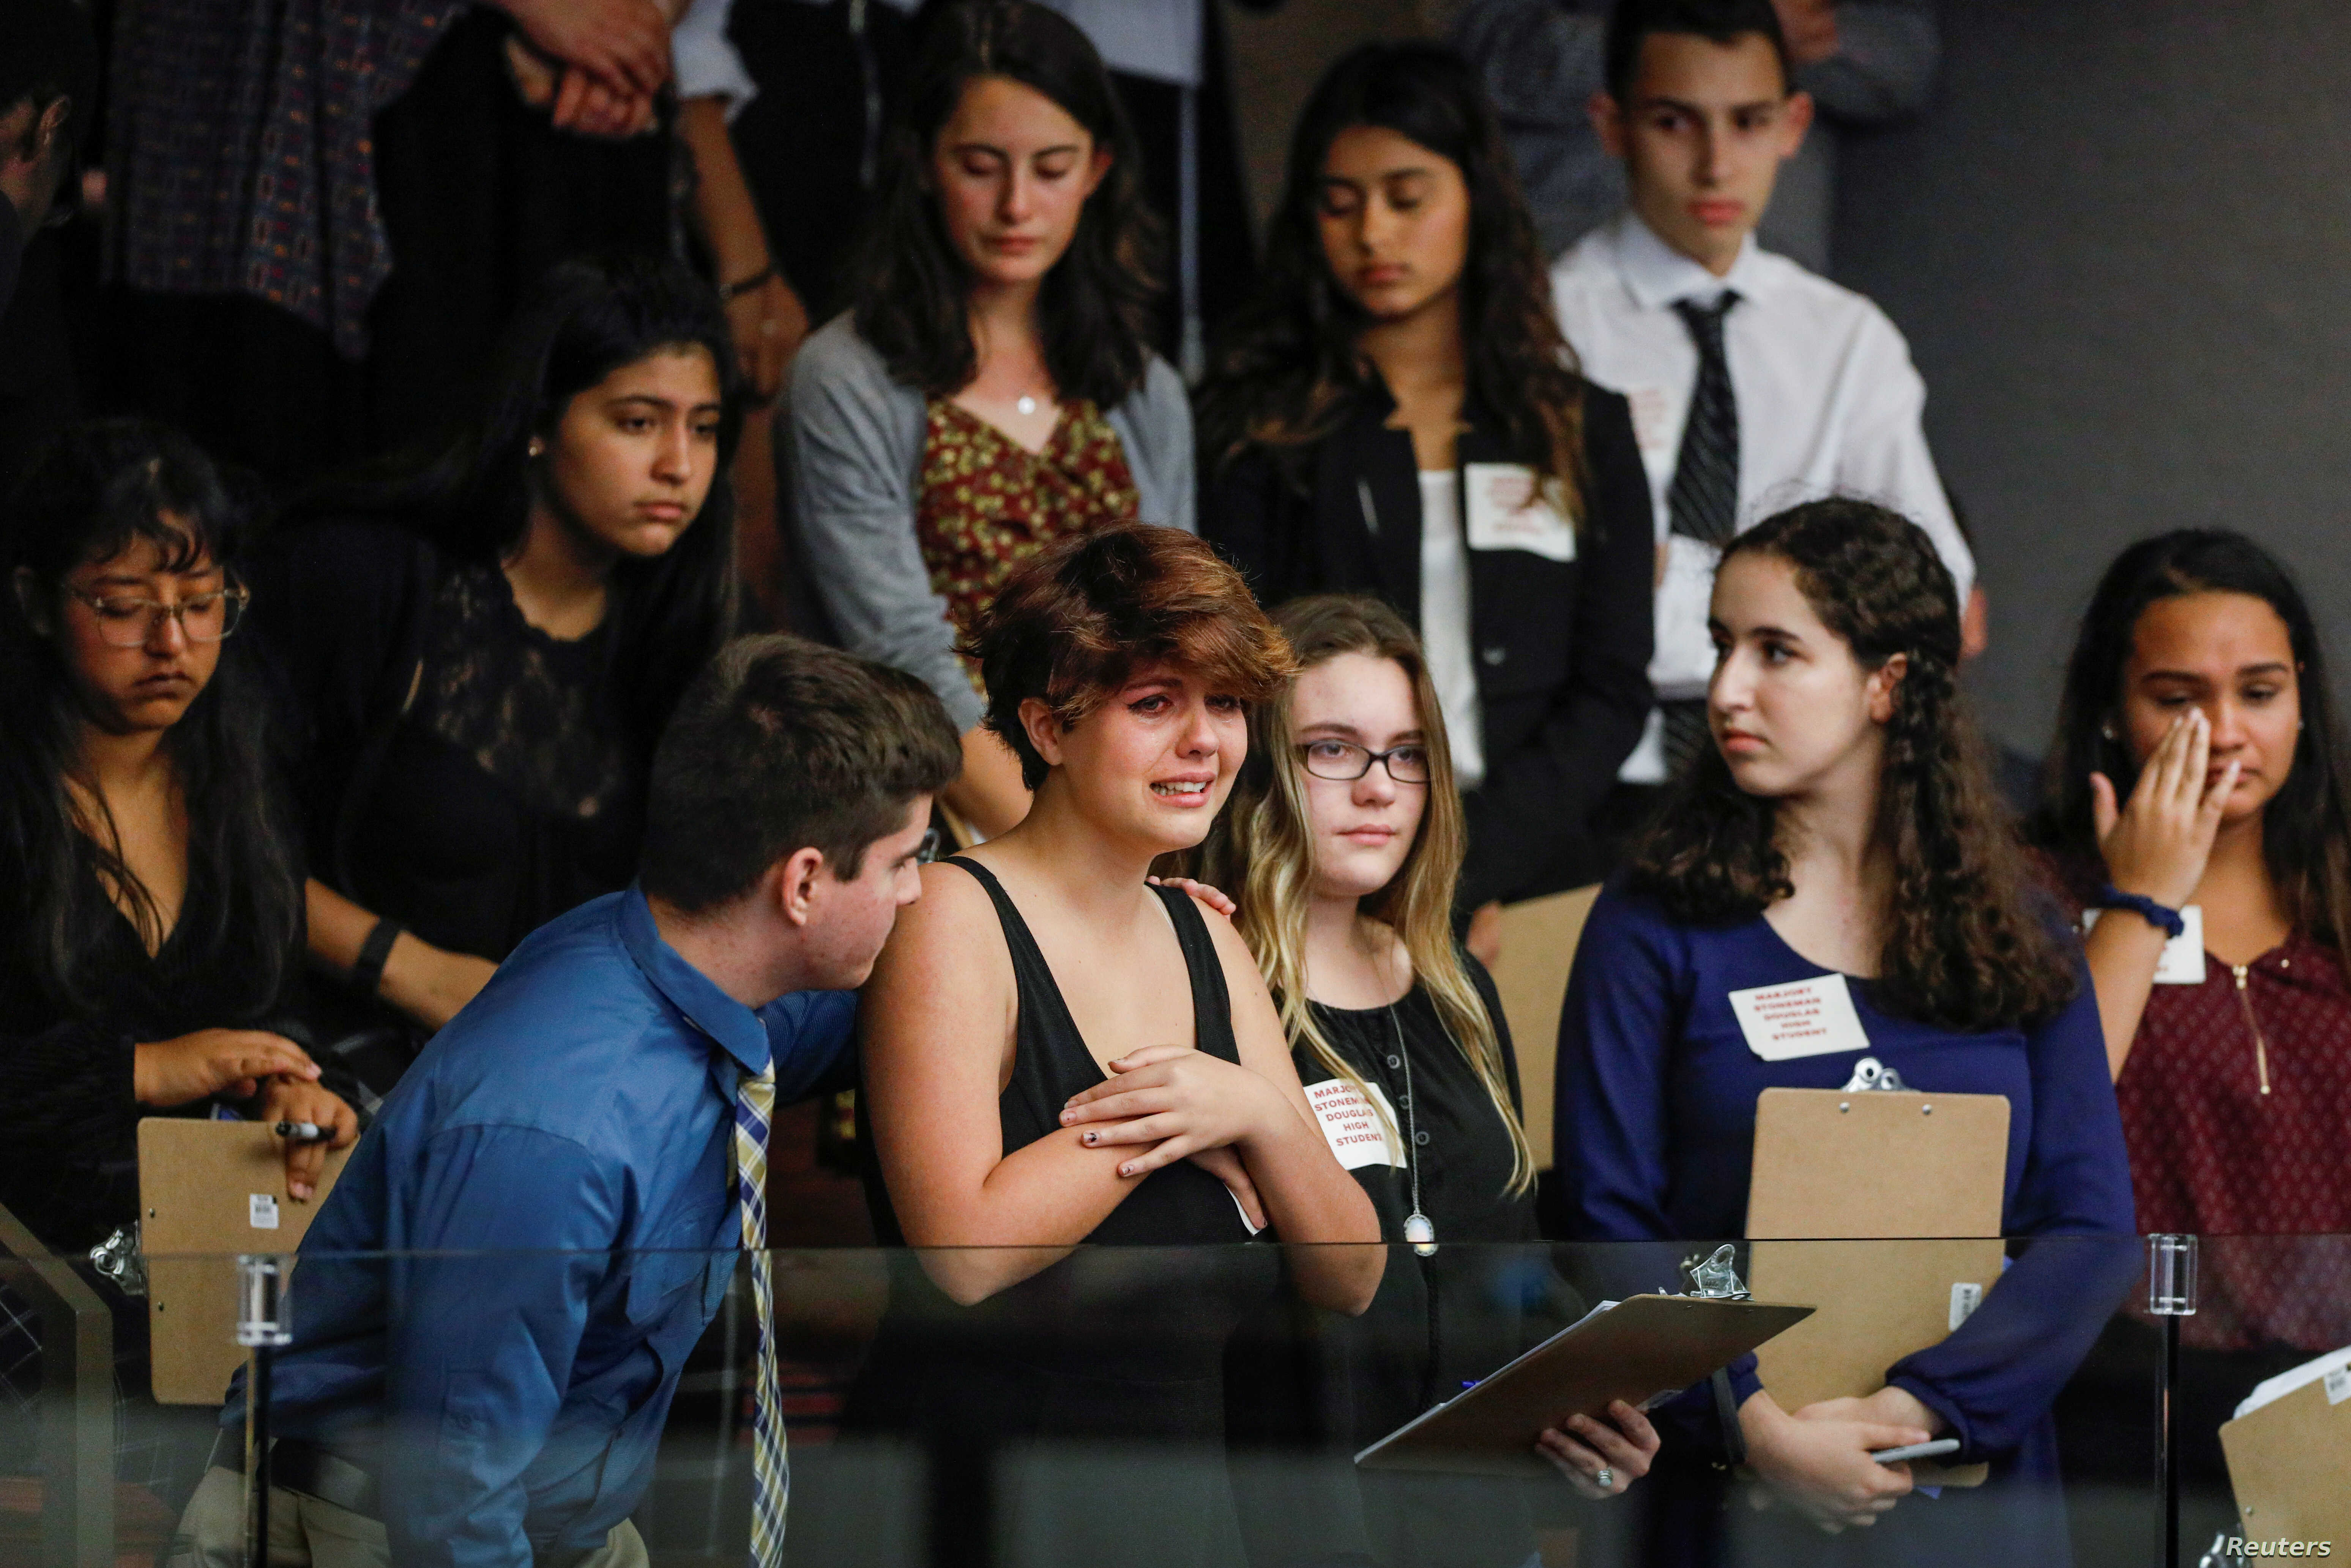 Students from Marjory Stoneman Douglas High School and those supporting them react, Feb. 20, 2018, as they watch the Florida House of Representatives vote down a procedural move to take a bill banning assault weapons out of committee and bring it to ...